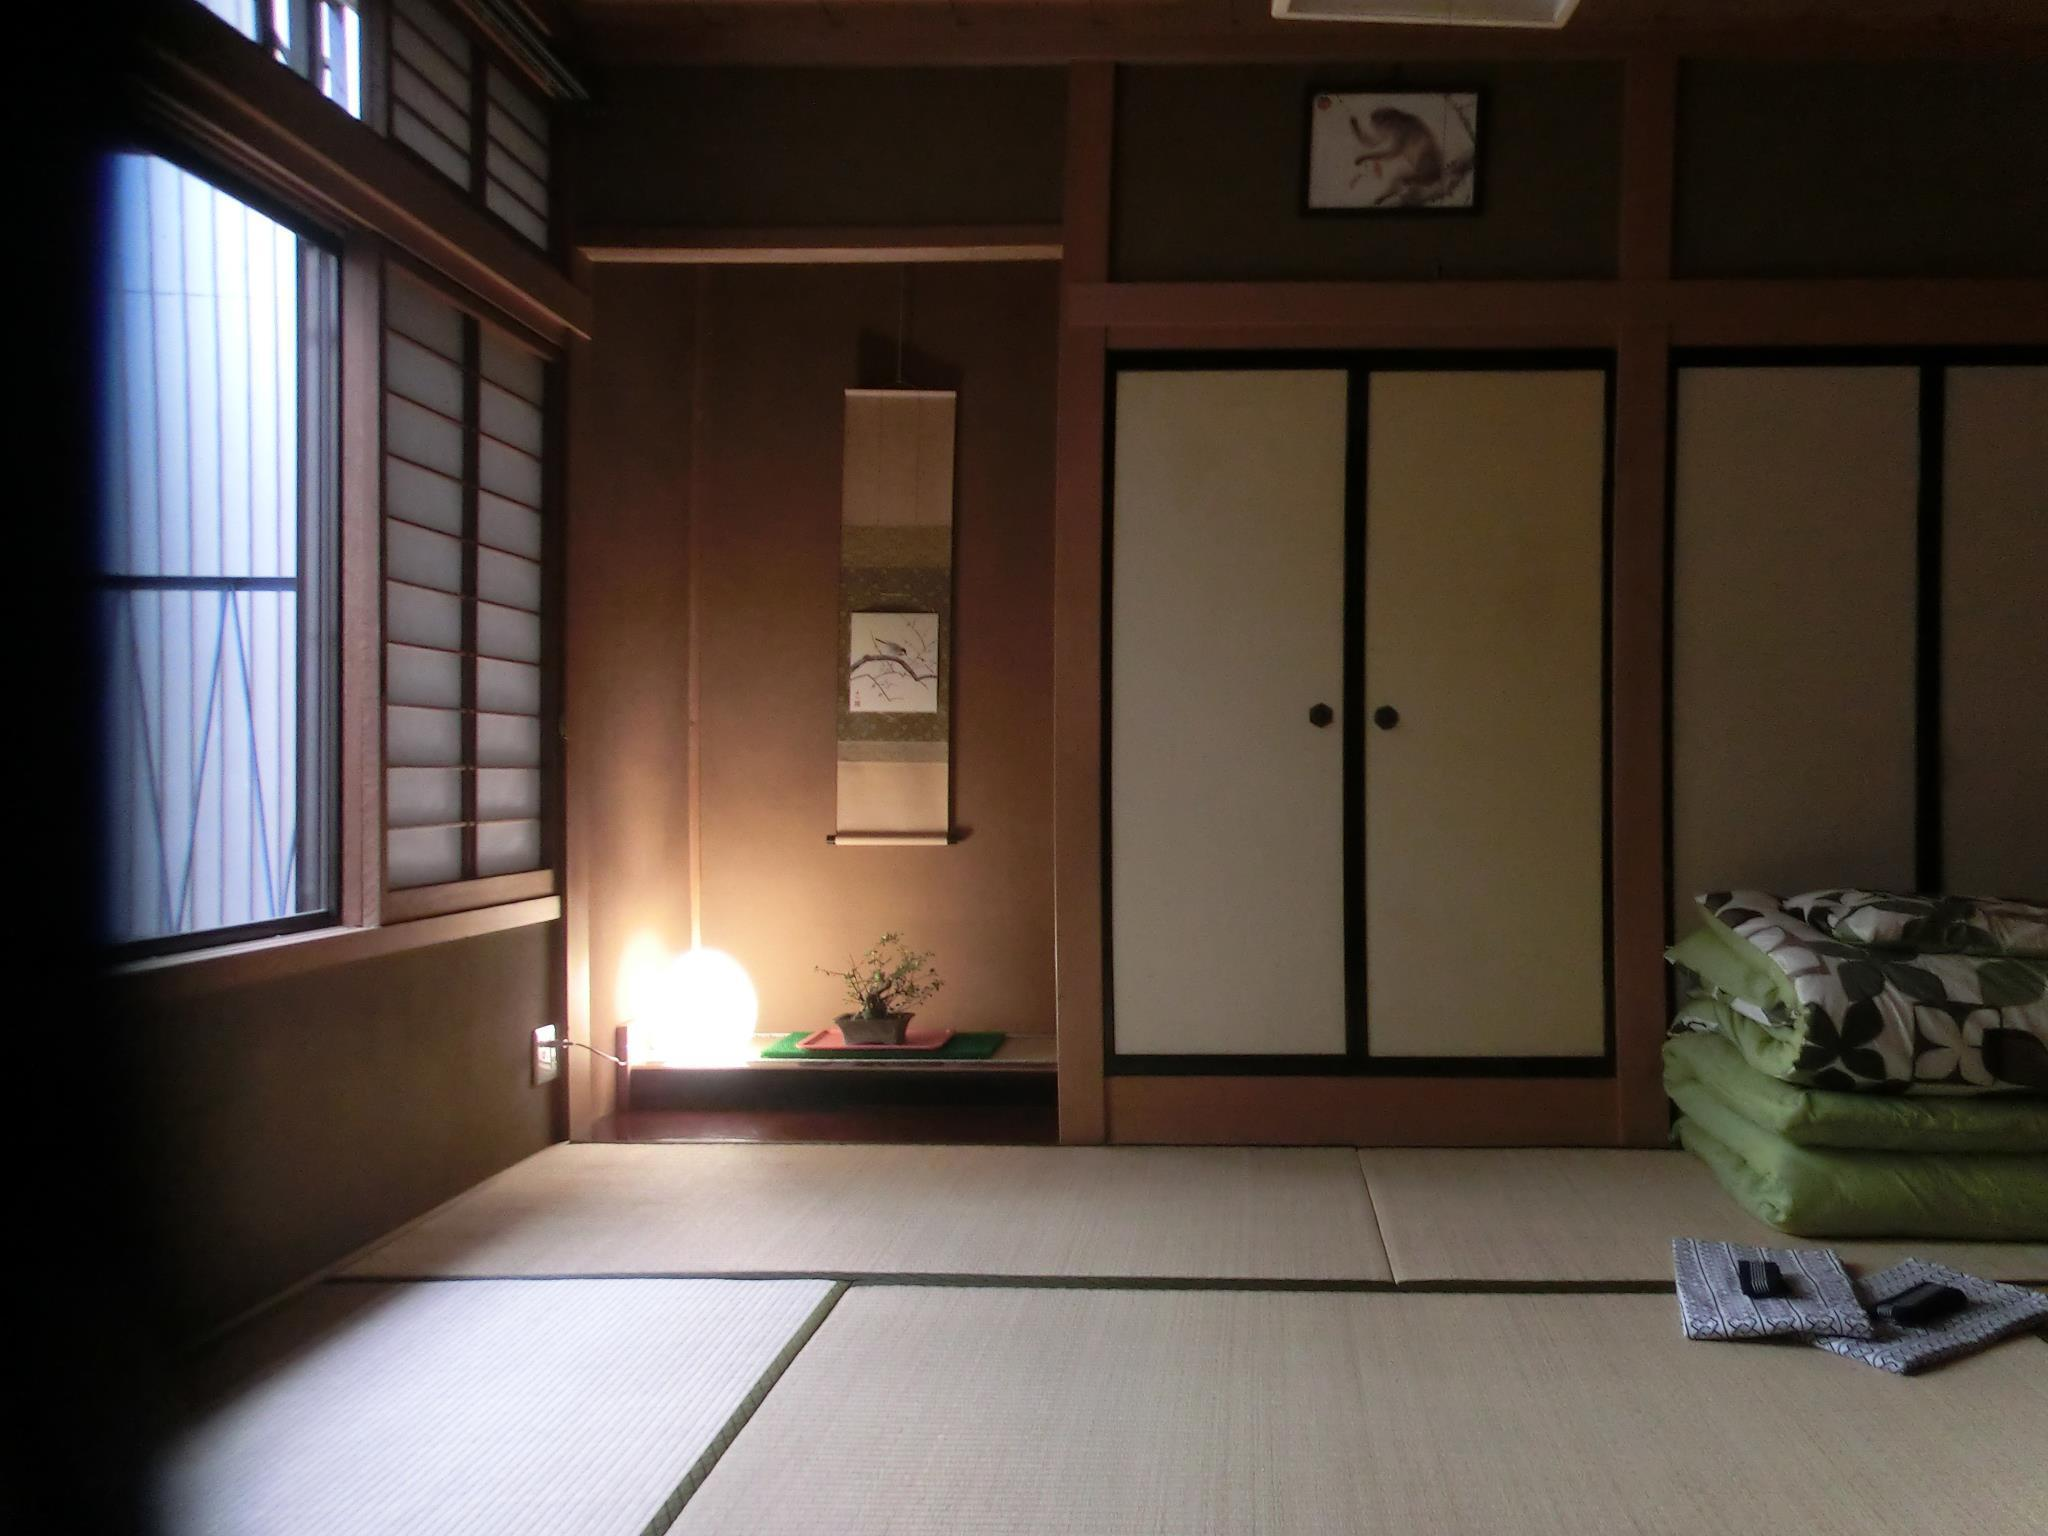 和室 ツインルーム(共同バスルーム) (Japanese Style Twin Room with Shared Bathroom)